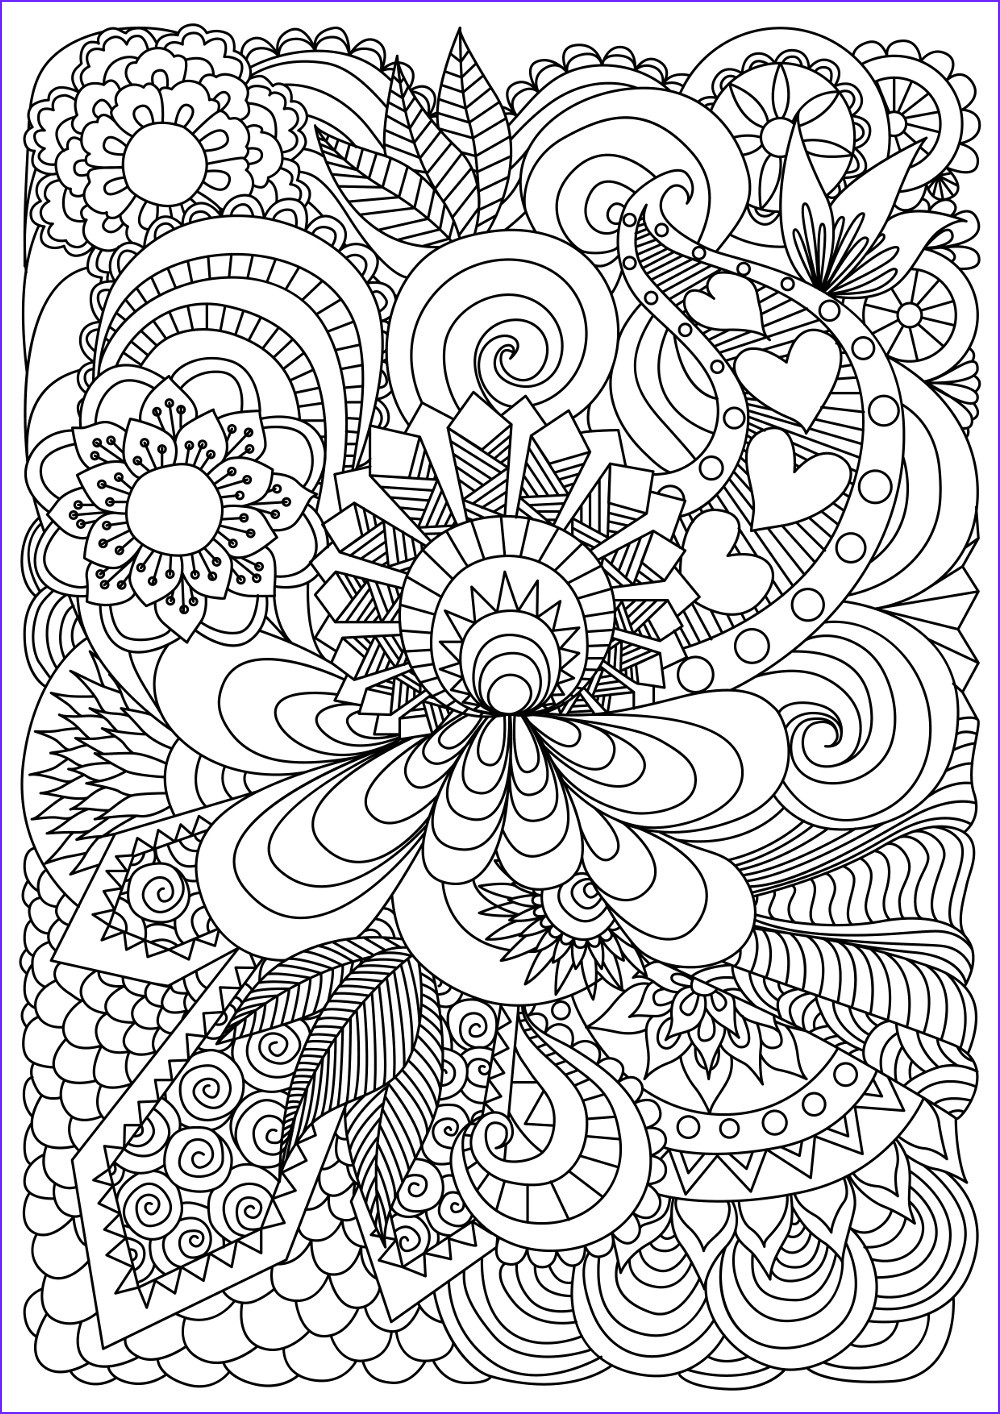 Adult Coloring Pictures Best Of Collection 37 Best Adults Coloring Pages Updated 2018